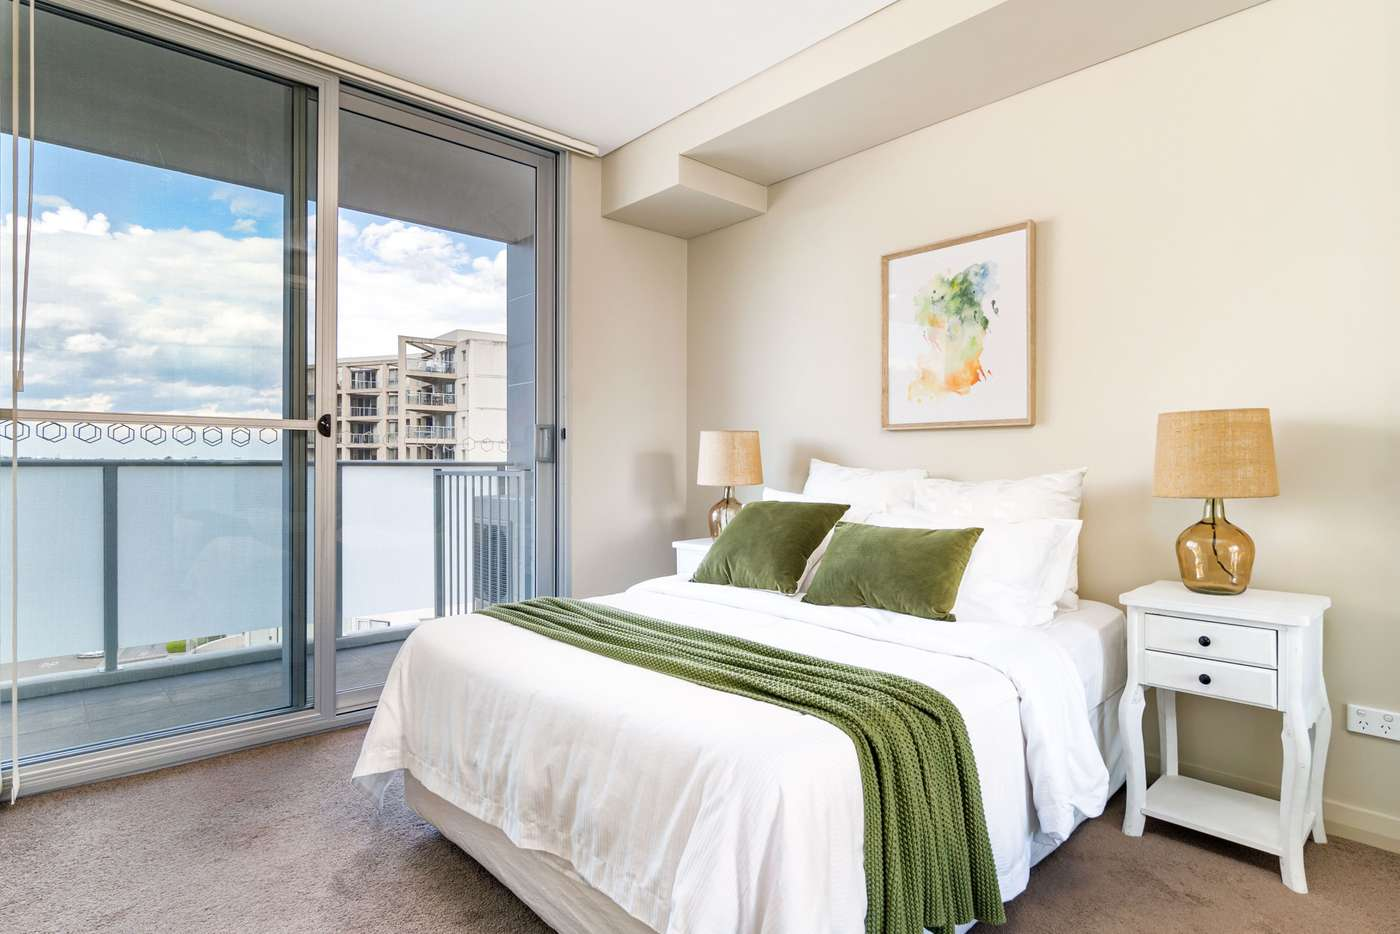 Fifth view of Homely apartment listing, 16/459-463 Church Street, Parramatta NSW 2150